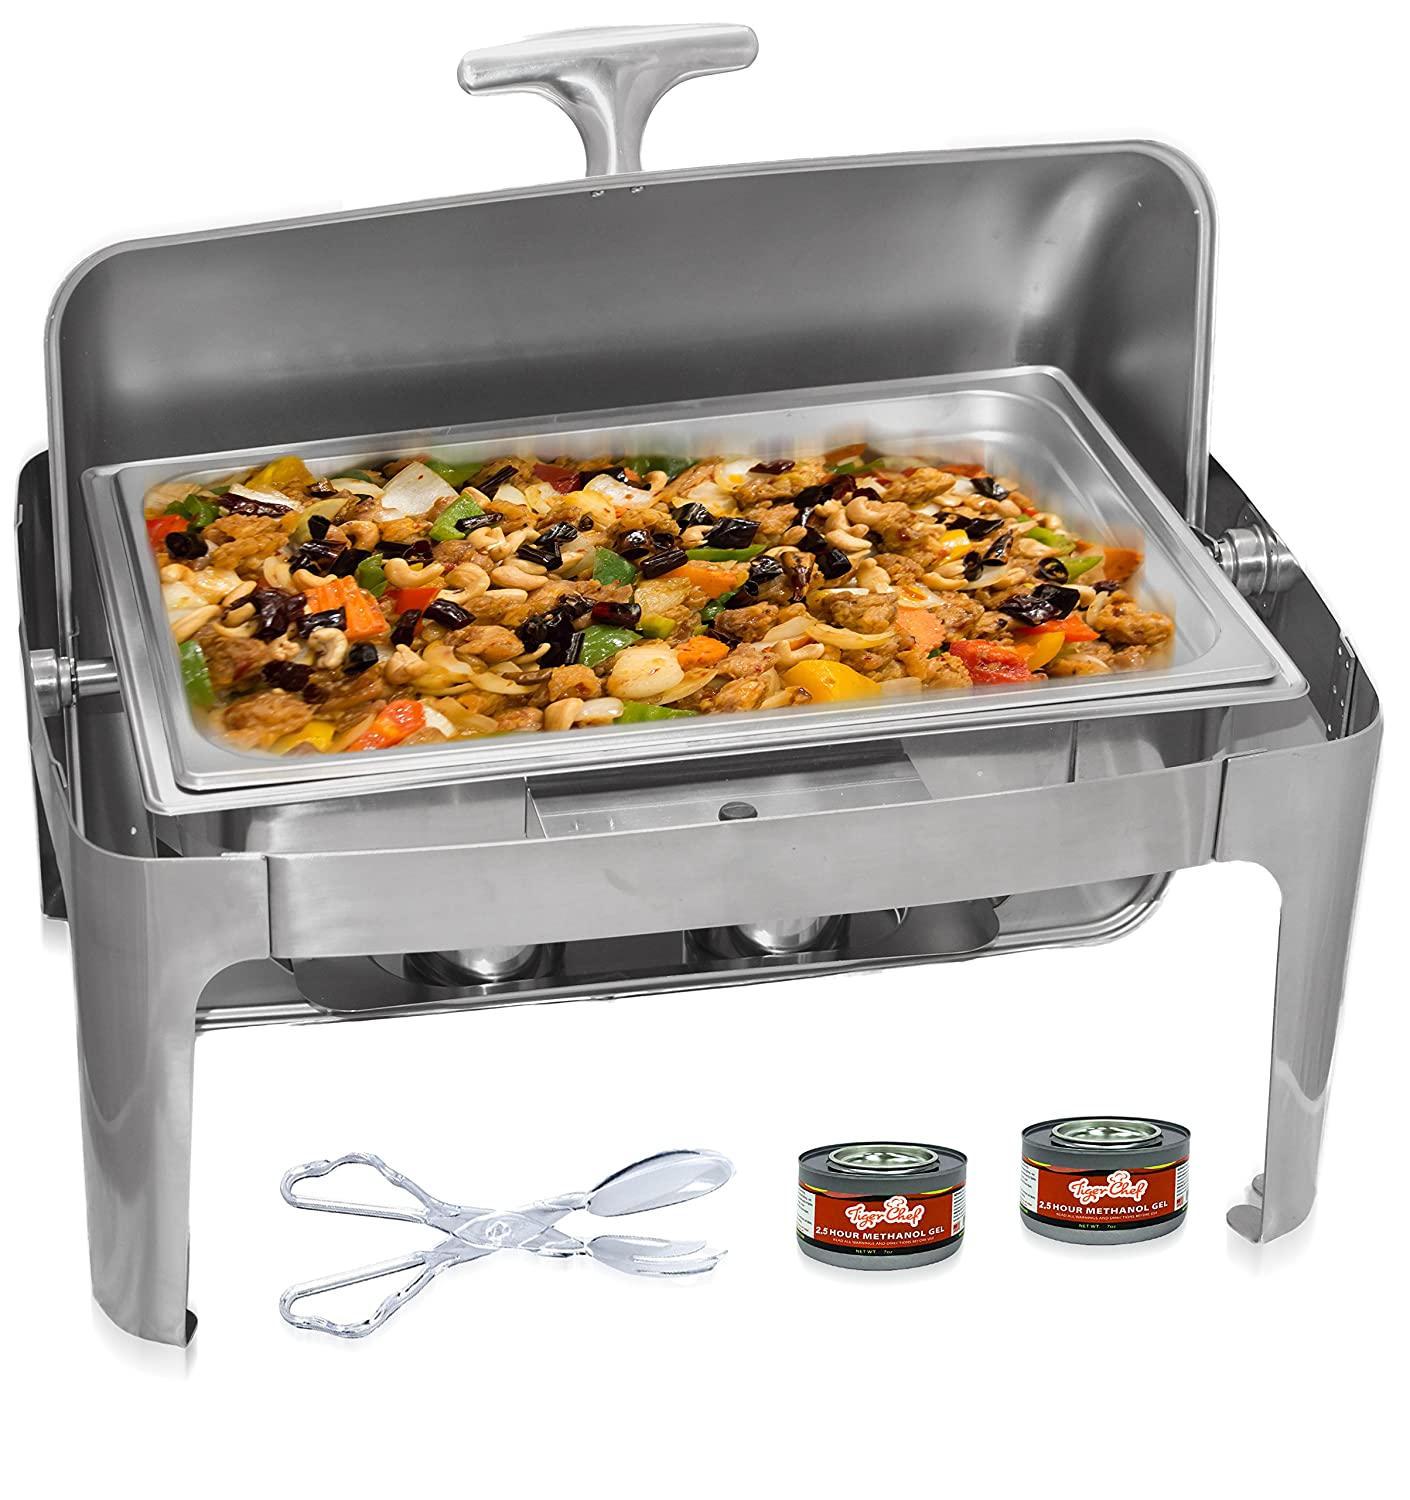 Tiger Chef Stainless Steel Roll Top Chafer, 8 Quart Chafing Dish Set with 2 Chafing Dish Fuel Gels and a 16-Inch Stainless Steel Multi-Function Tong by Tiger Chef